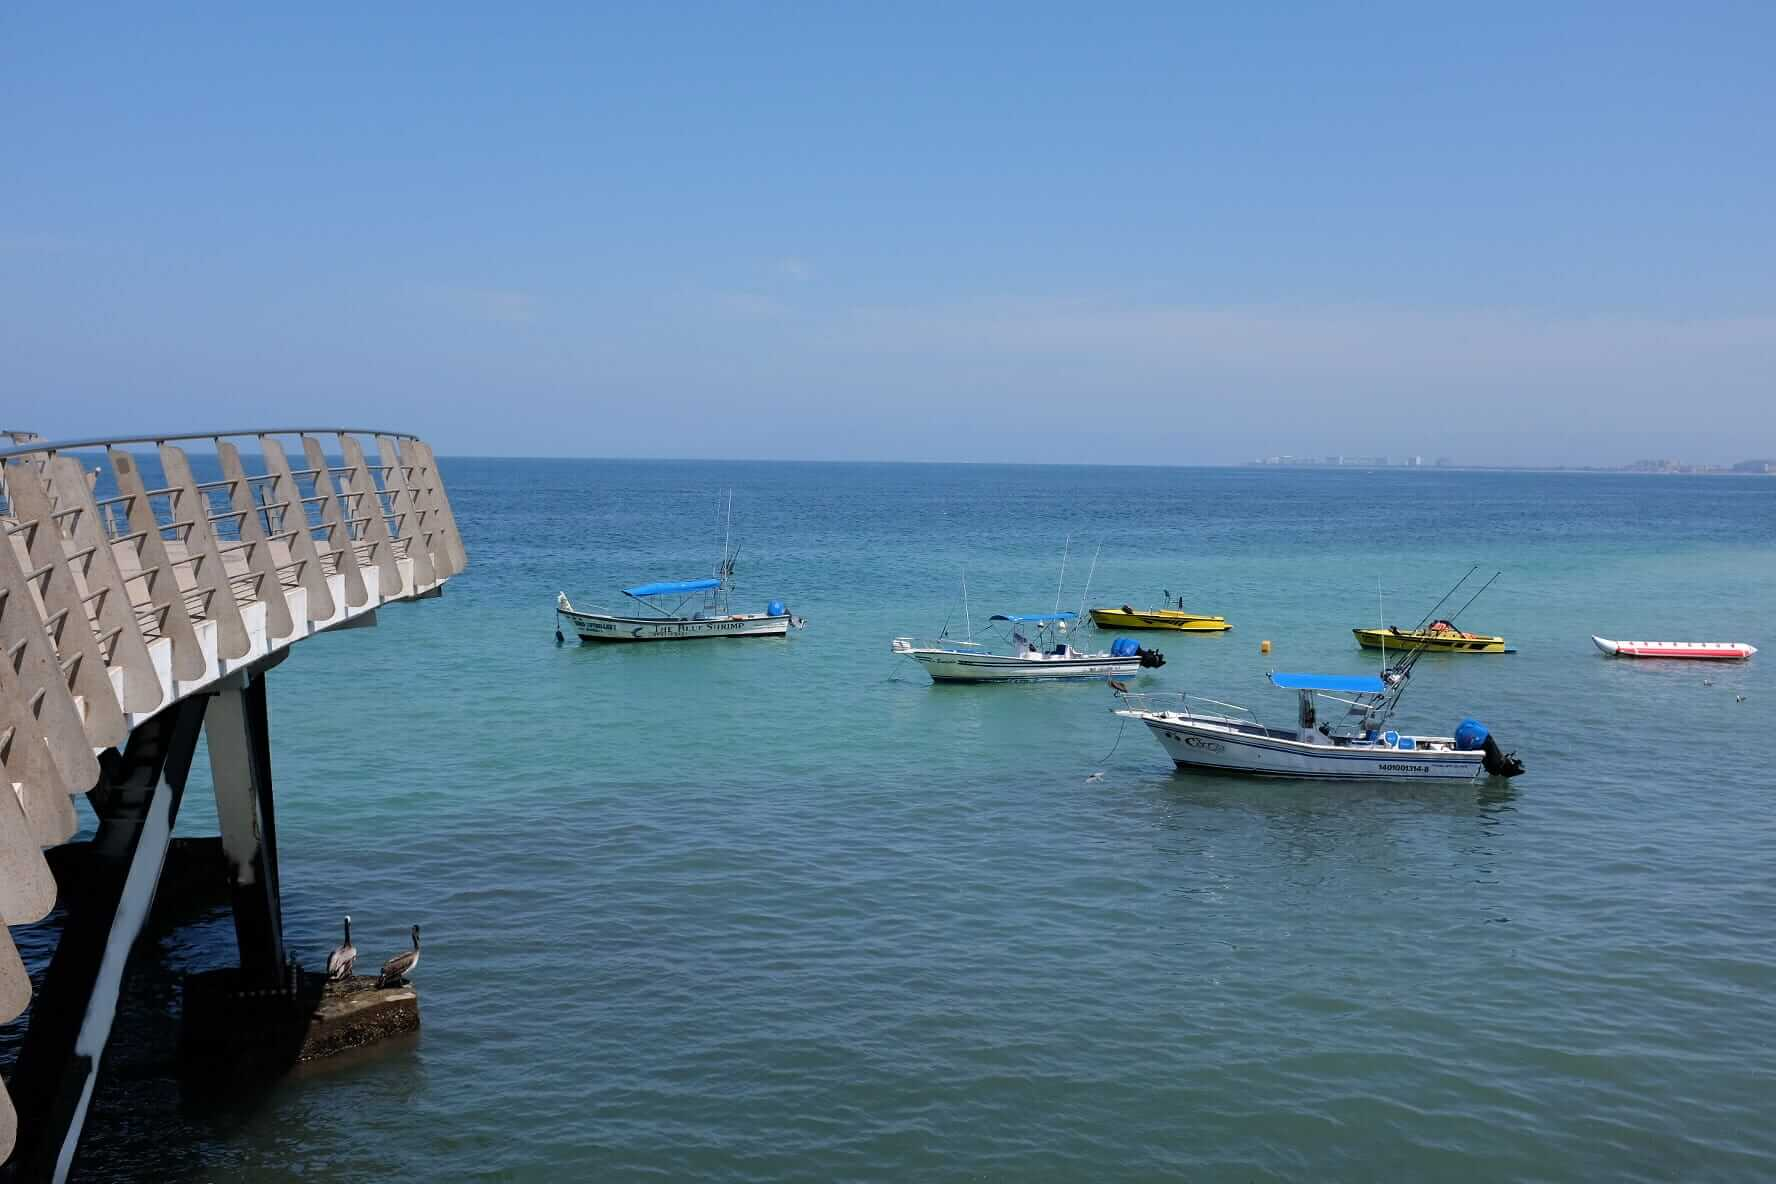 Boats on the Mexican sea